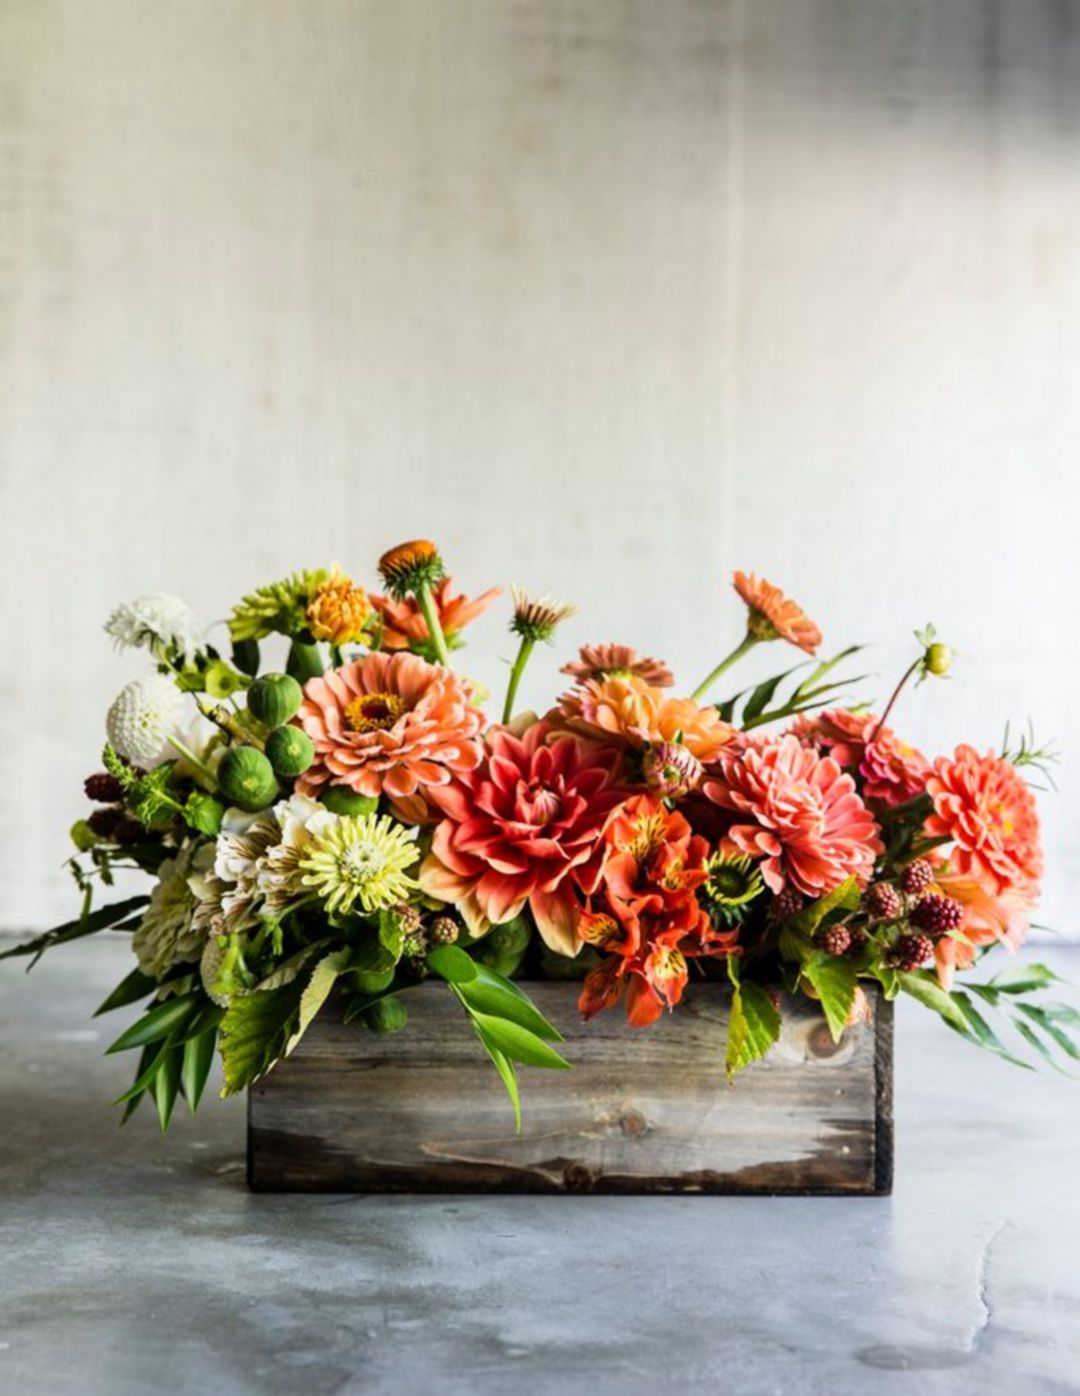 Top 15 Flower Arrangements Collections Ideas (With images